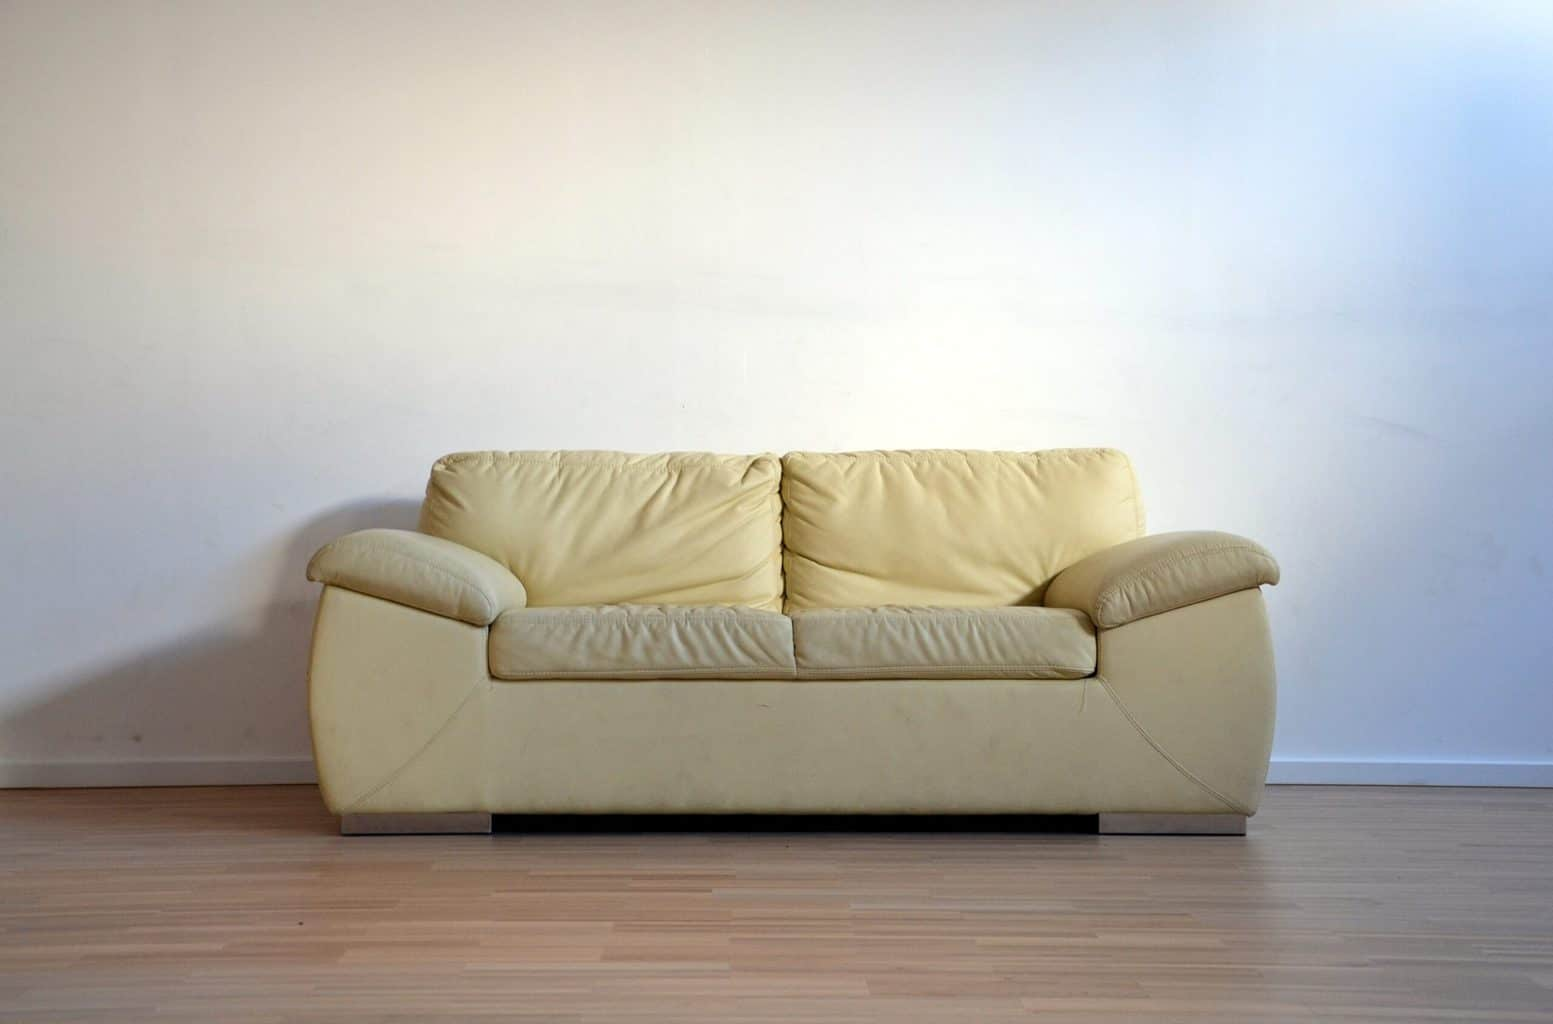 Sofa with huge furniture pads